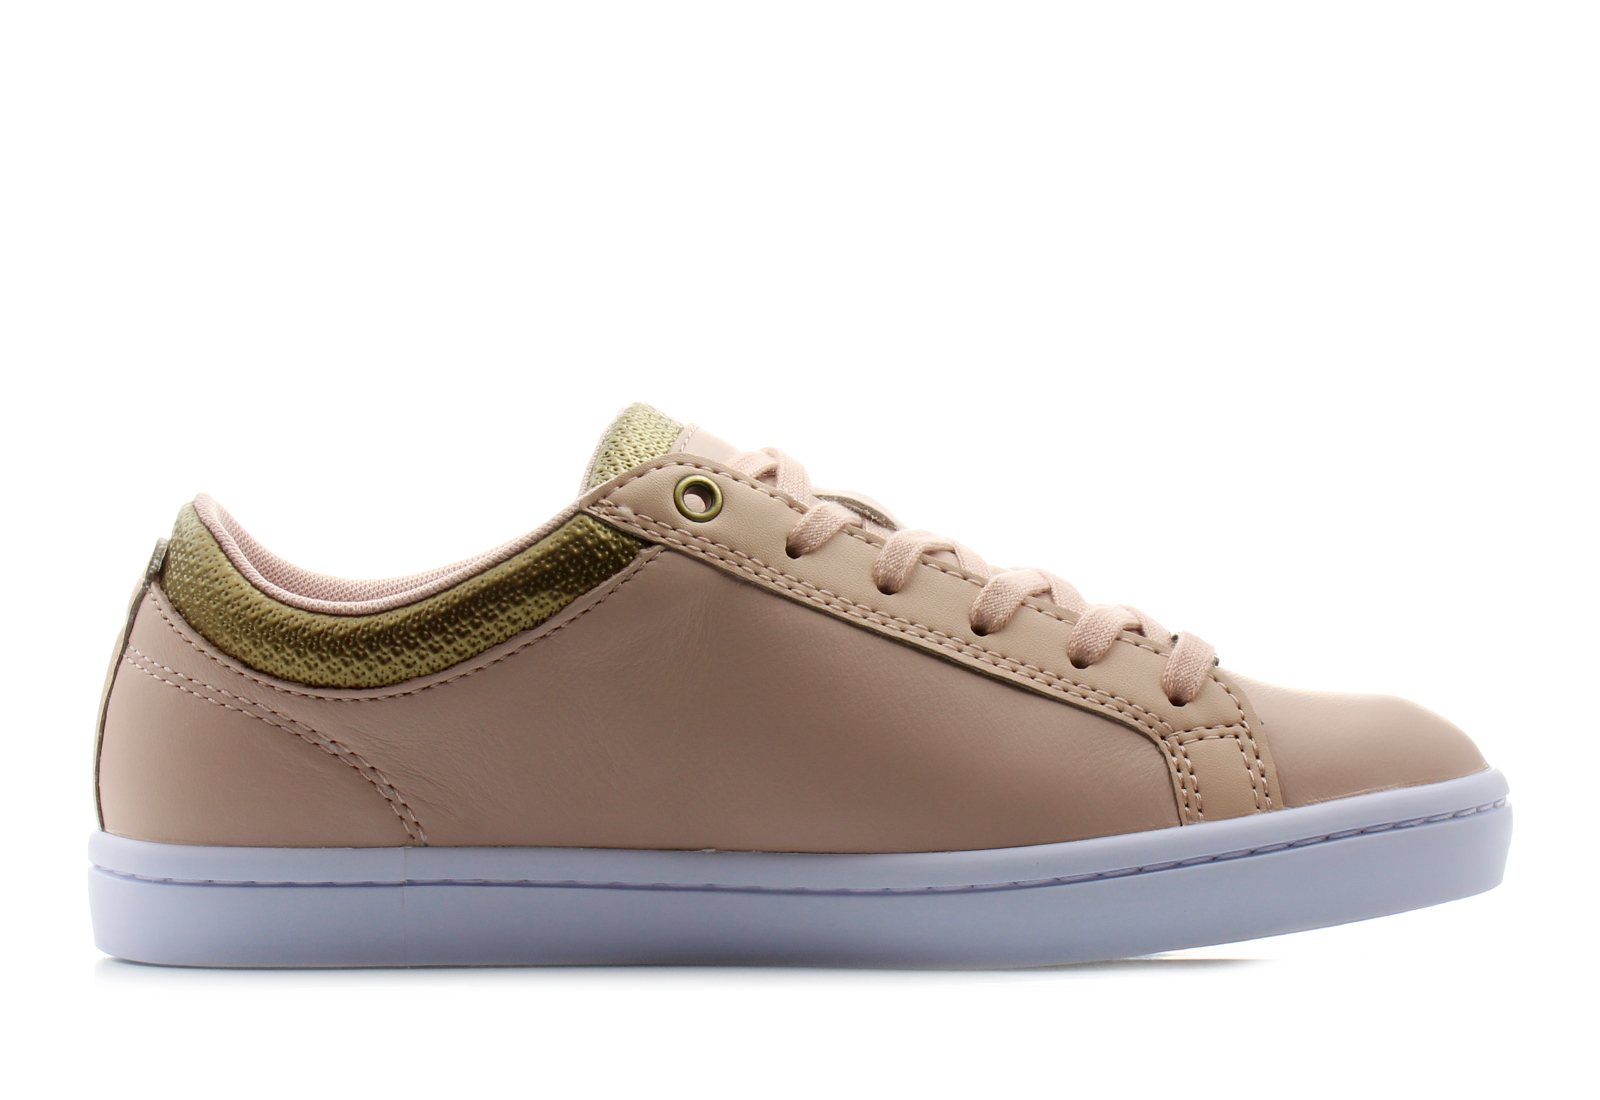 Lacoste Cipő - Straightset 118 1 - 181caw0064-ng9 - Office Shoes ... d012ce6524